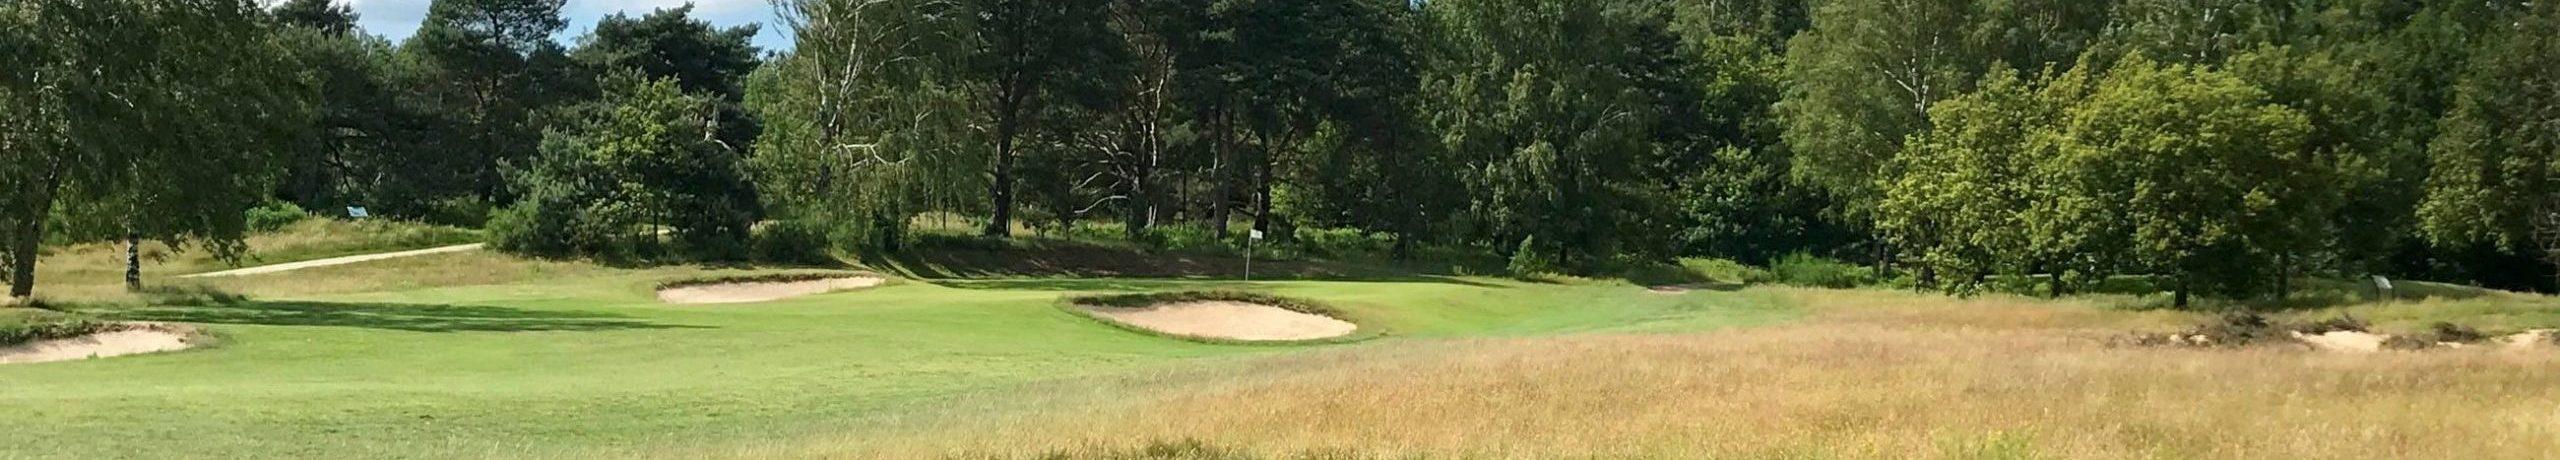 Edese Golfclub Papendal - Hole 16